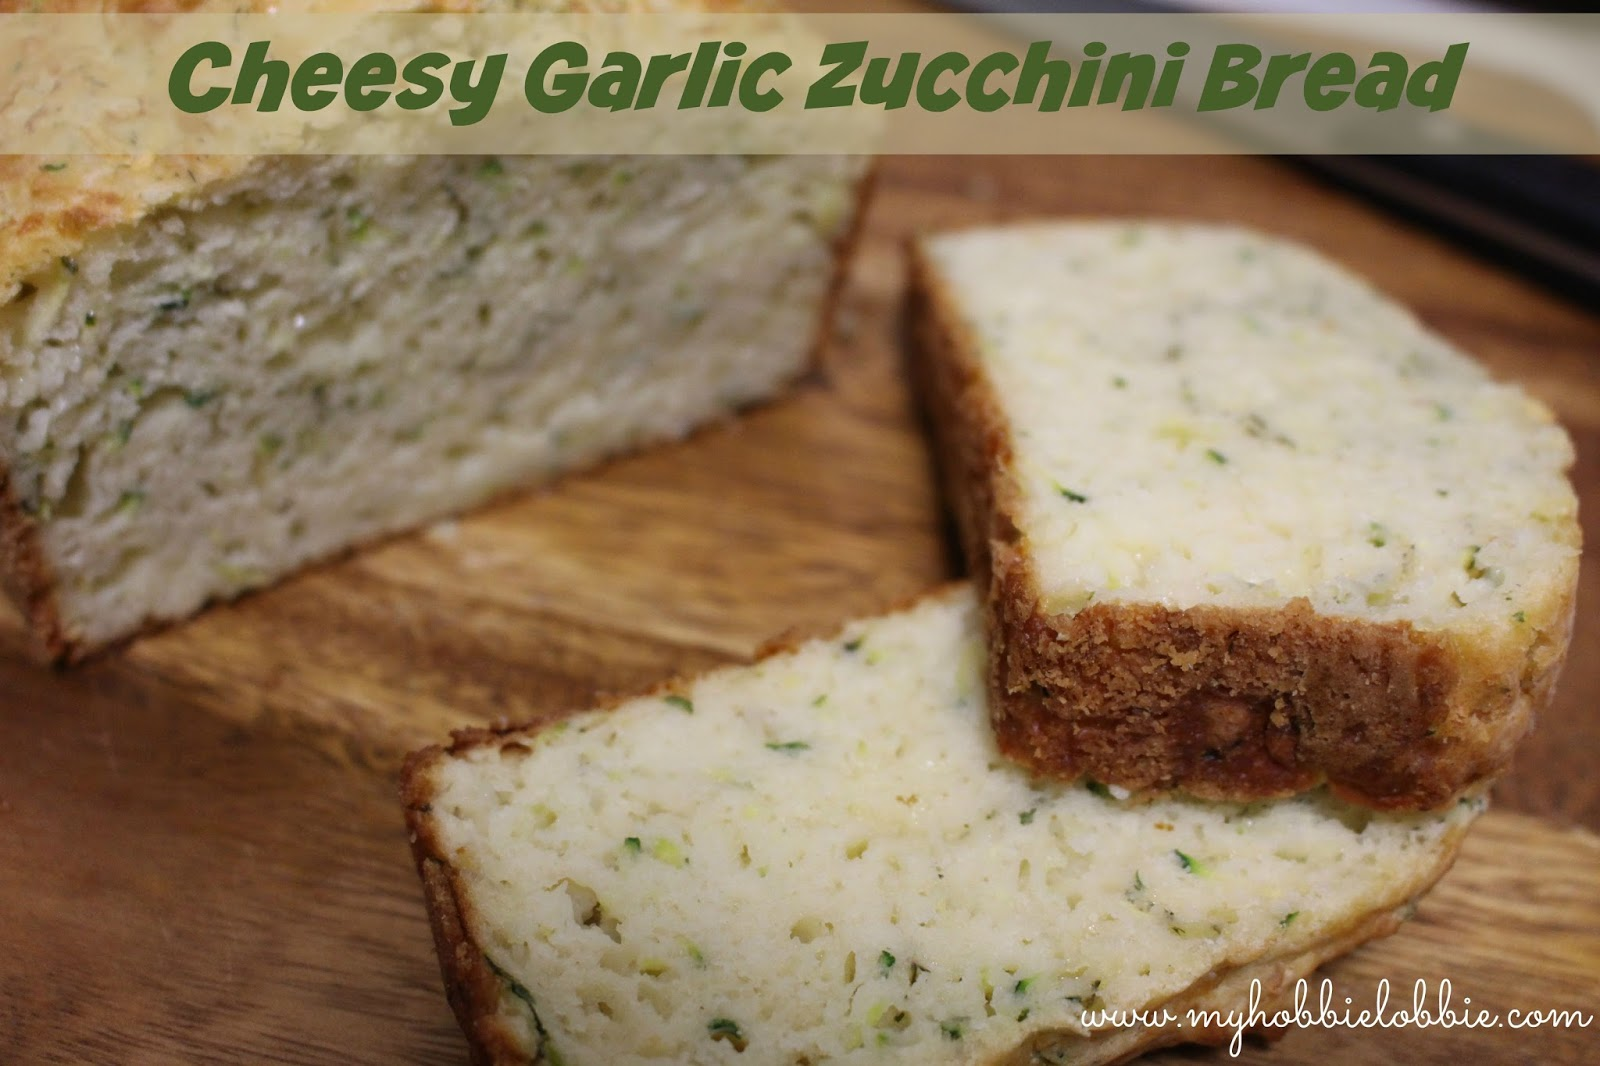 My Hobbie Lobbie: Cheesy Garlic Zucchini Bread